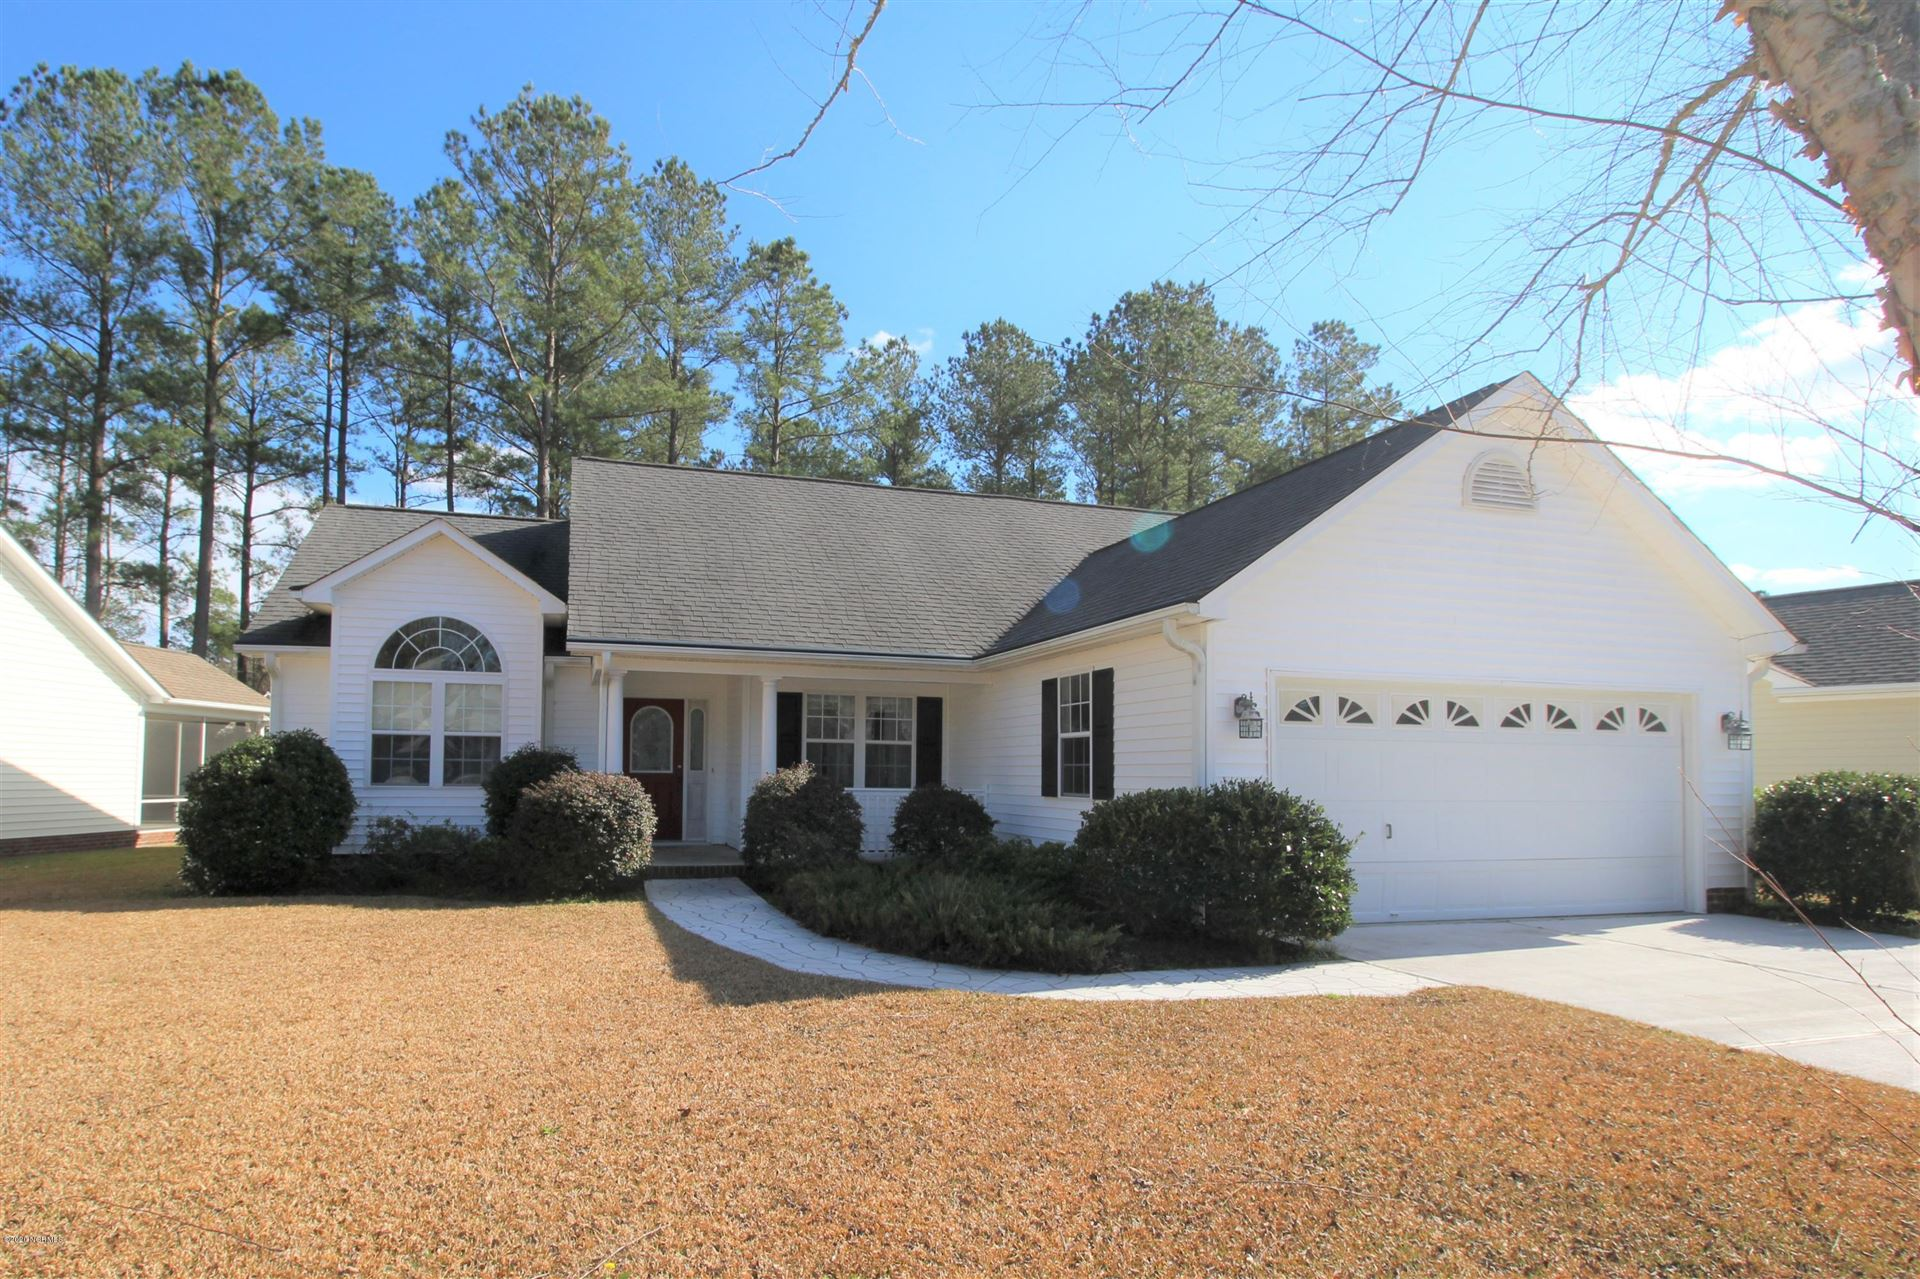 421 Neuchatel Road, New Bern, NC 28562 - #: 100204715